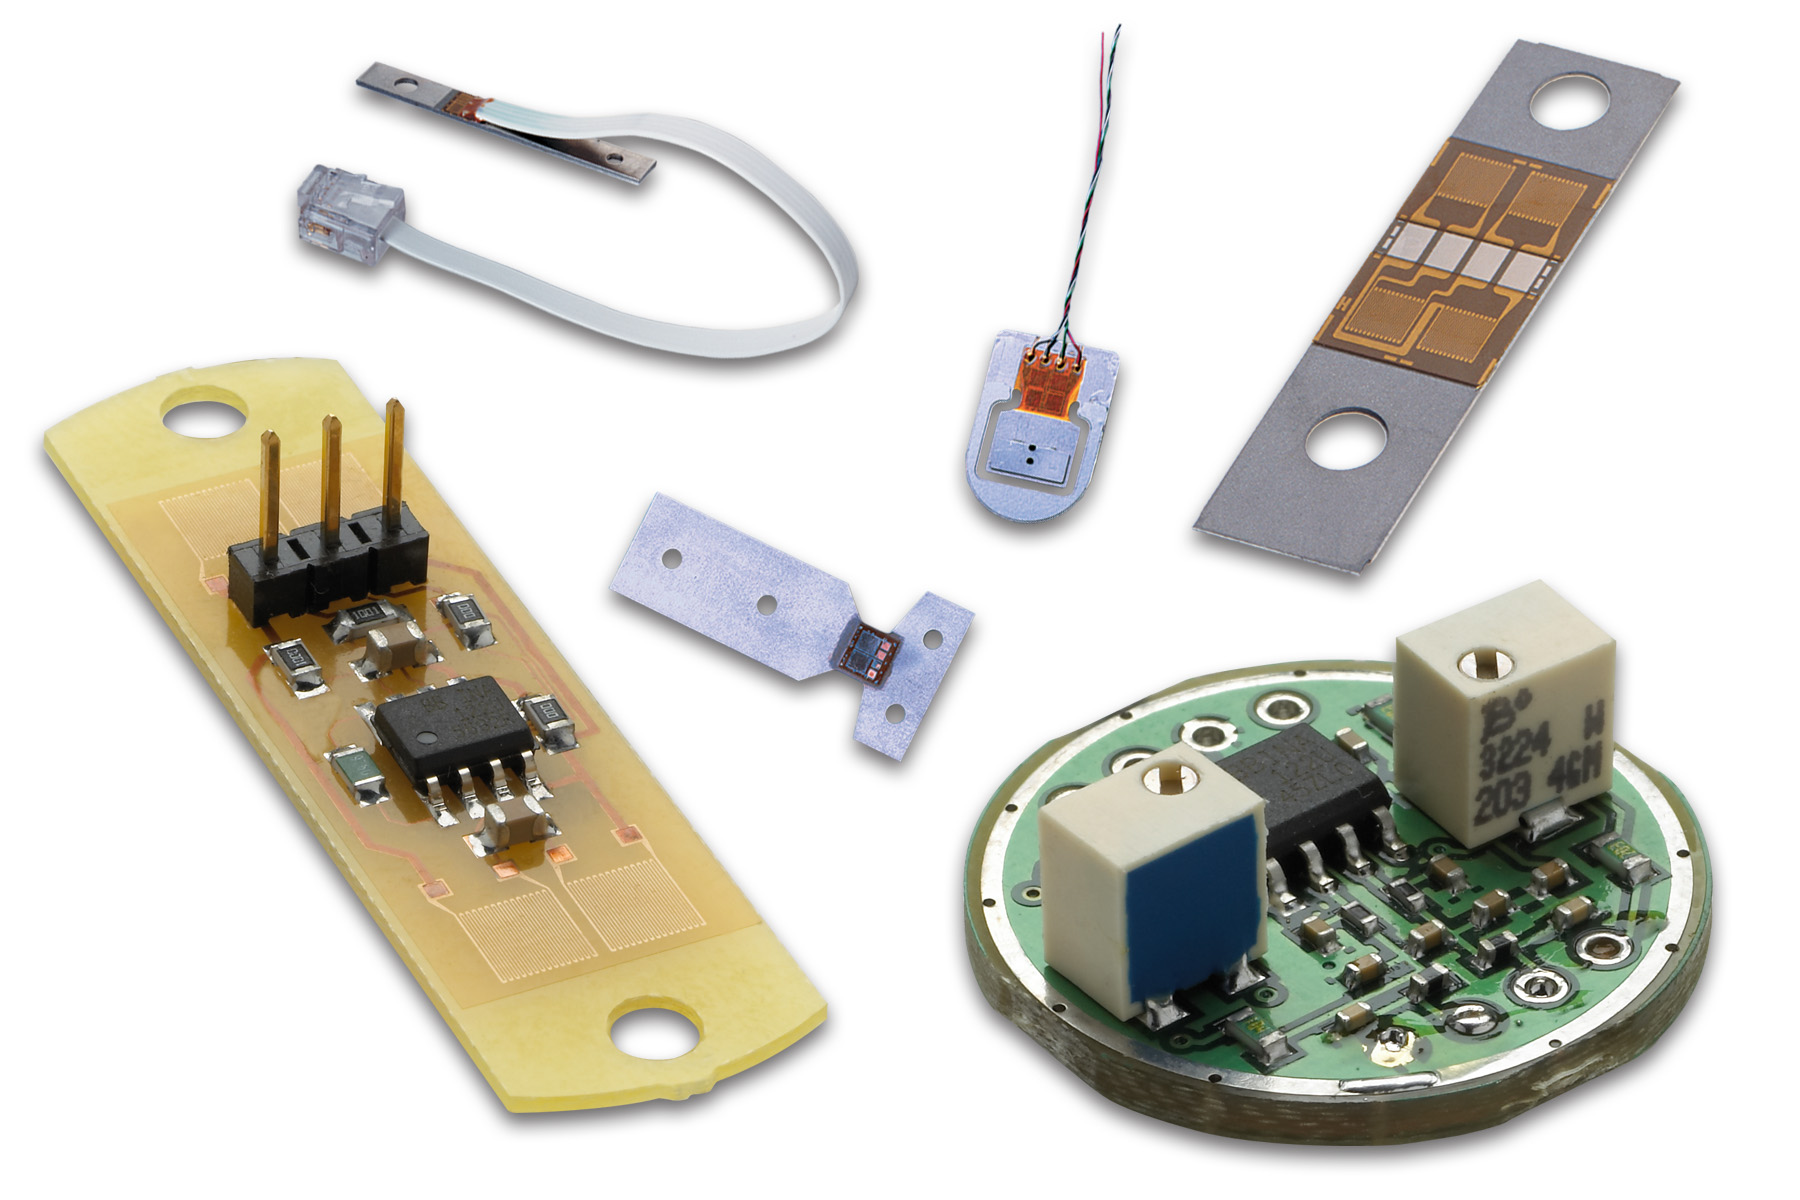 Miniature, Lightweight Hybrid Sensors Designed for Force, Displacement, Pressure, Strain, and Acceleration Measurements